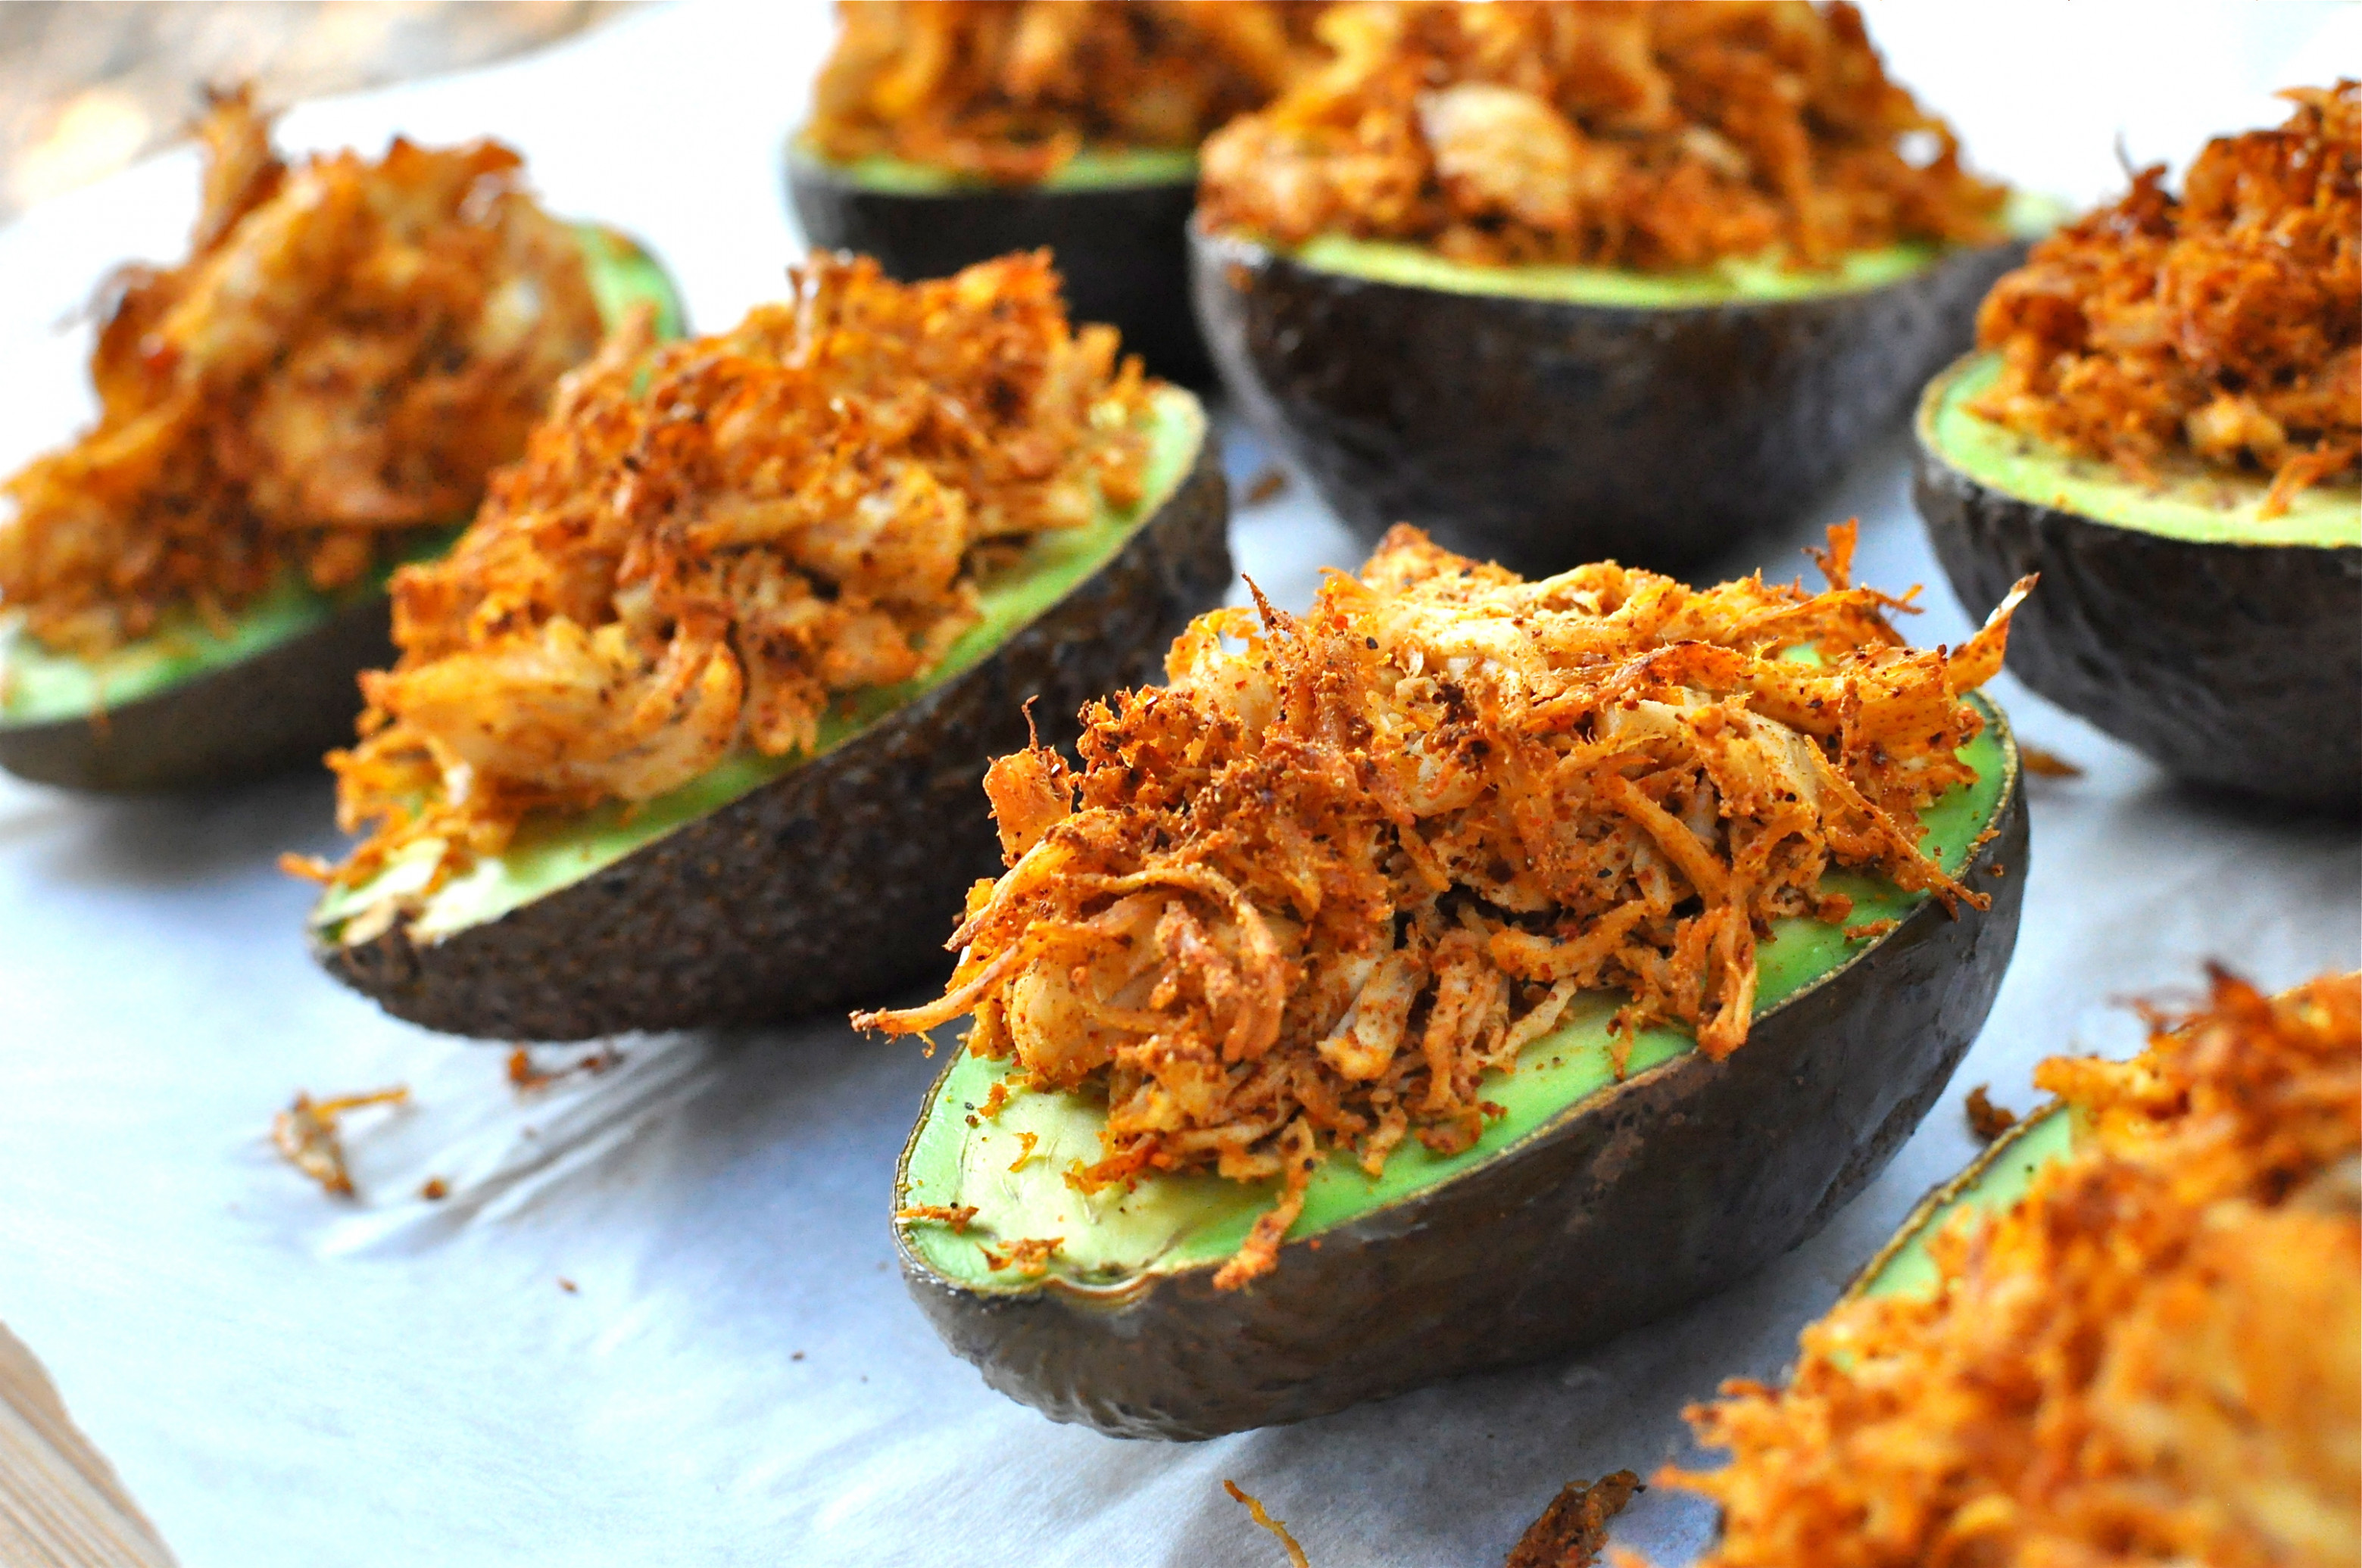 Paleo Stuffed Avocados with Cilantro Cream Sauce - Fed & Fit